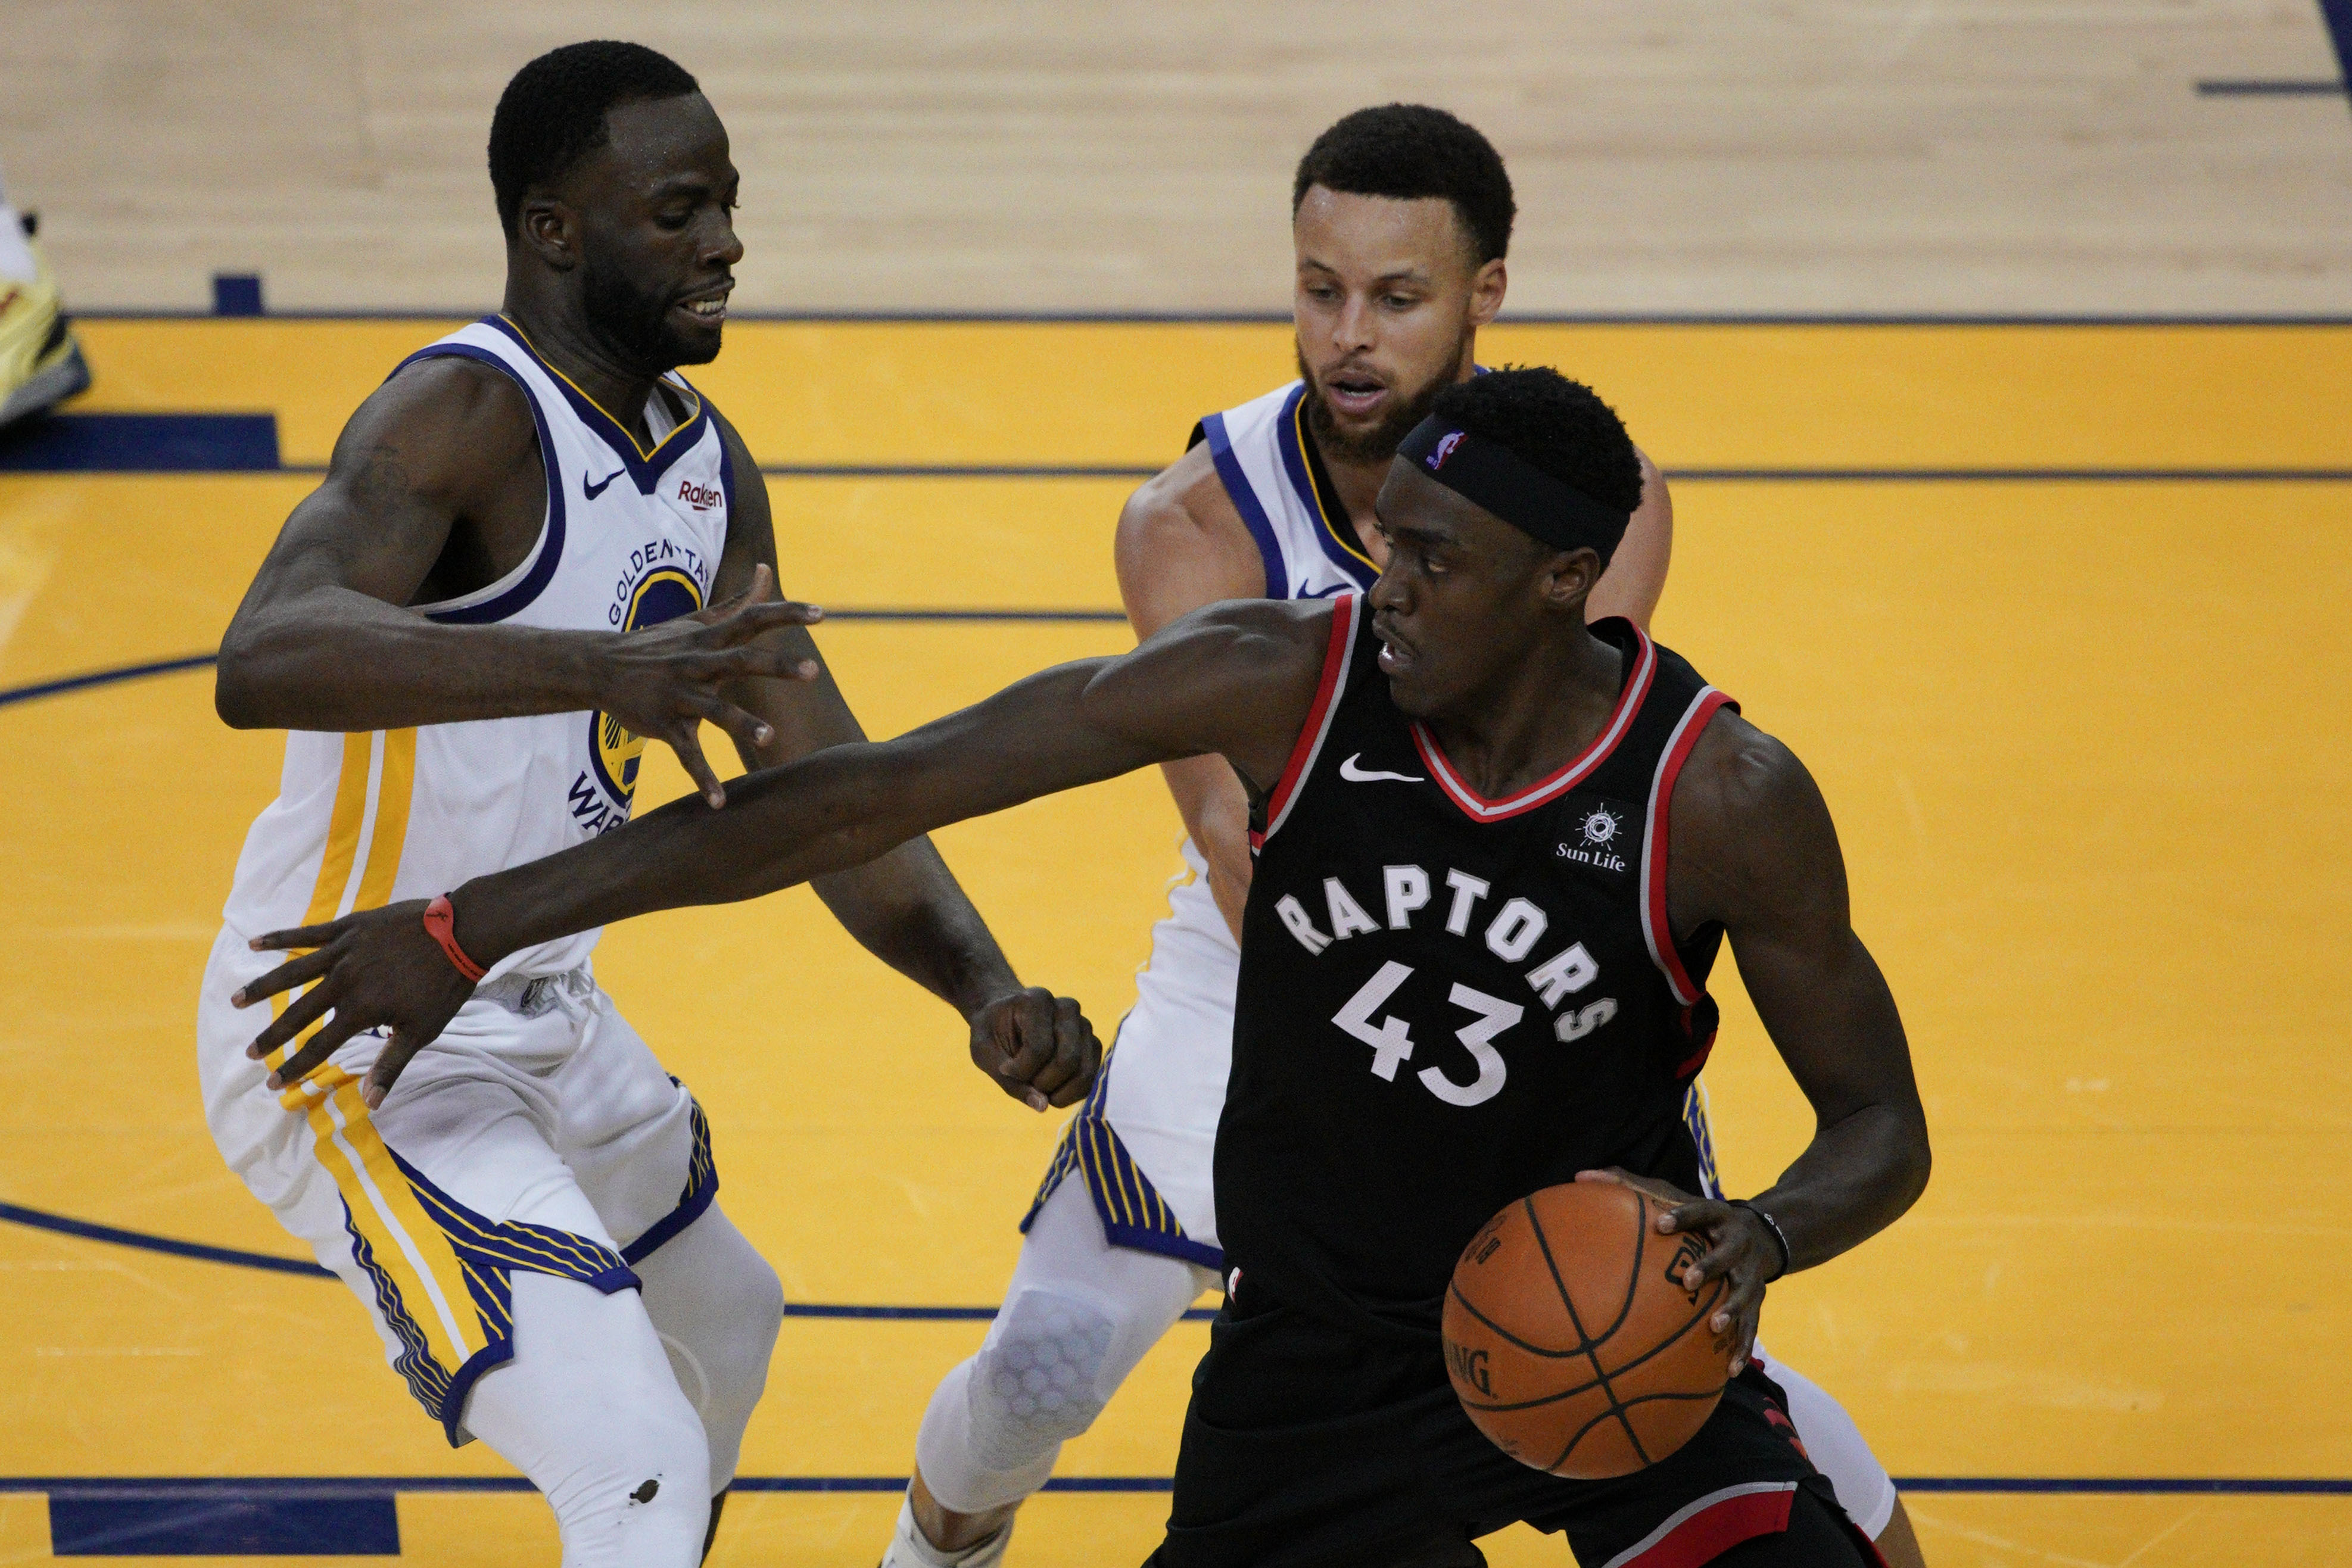 586177d8 Raptors hold off Stephen Curry, Warriors to go up 2-1 in NBA Finals - The  Washington Post